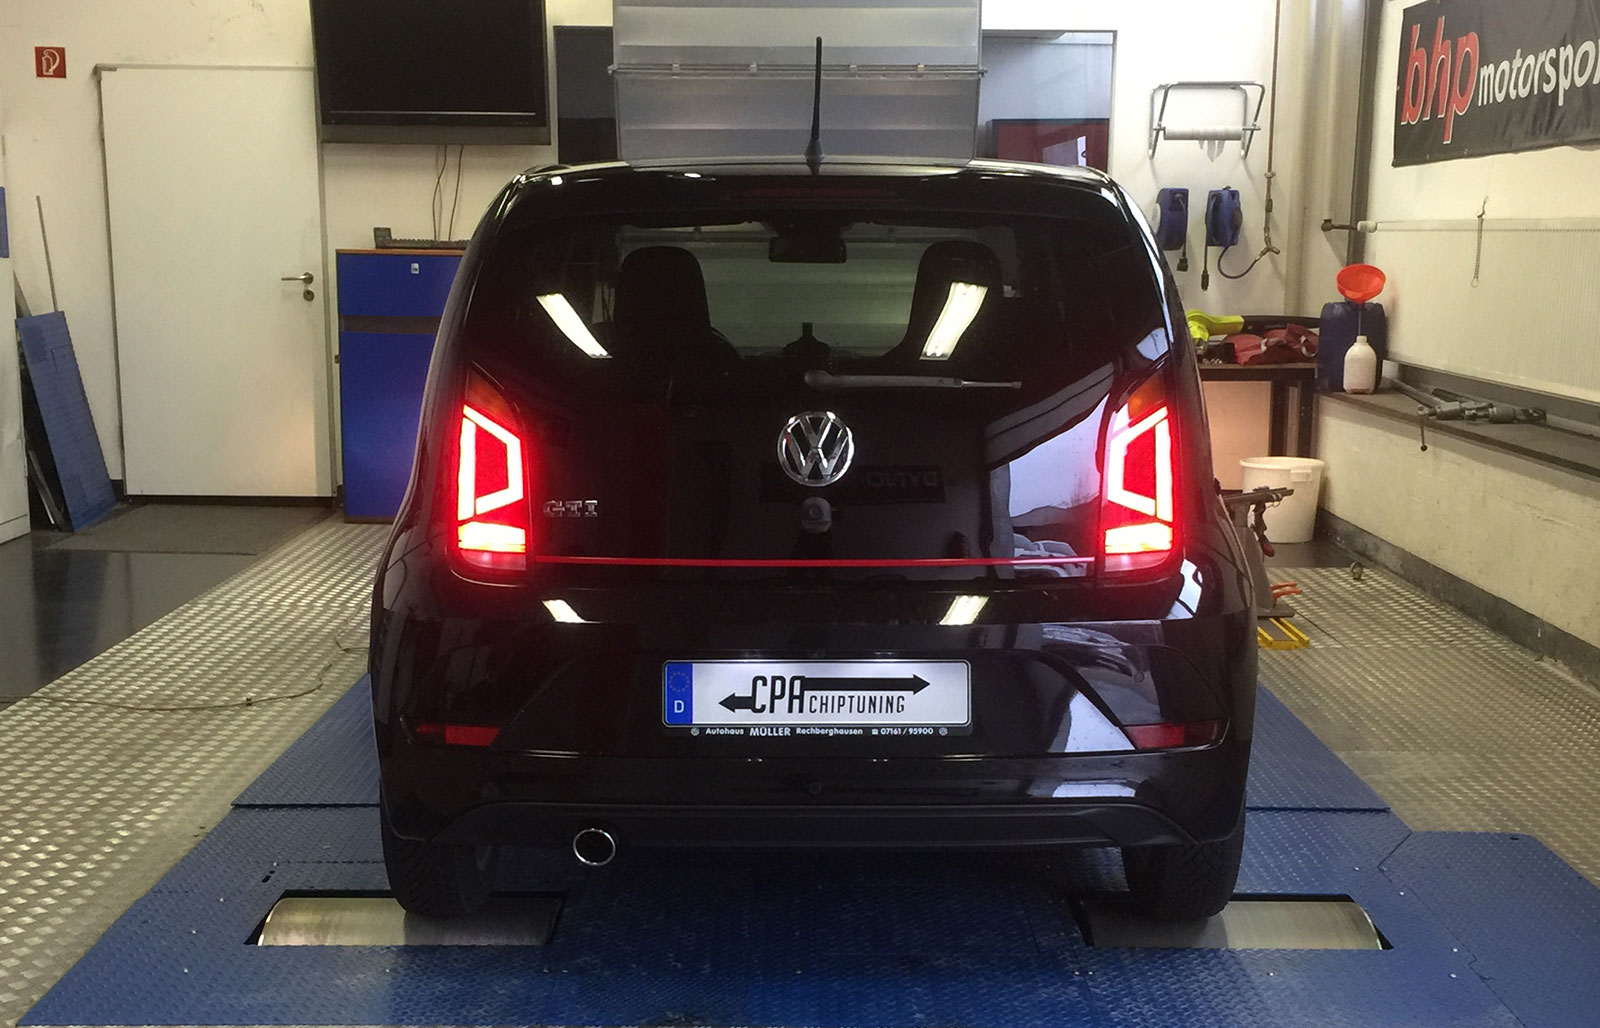 Chiptuning for the VW UP GTI